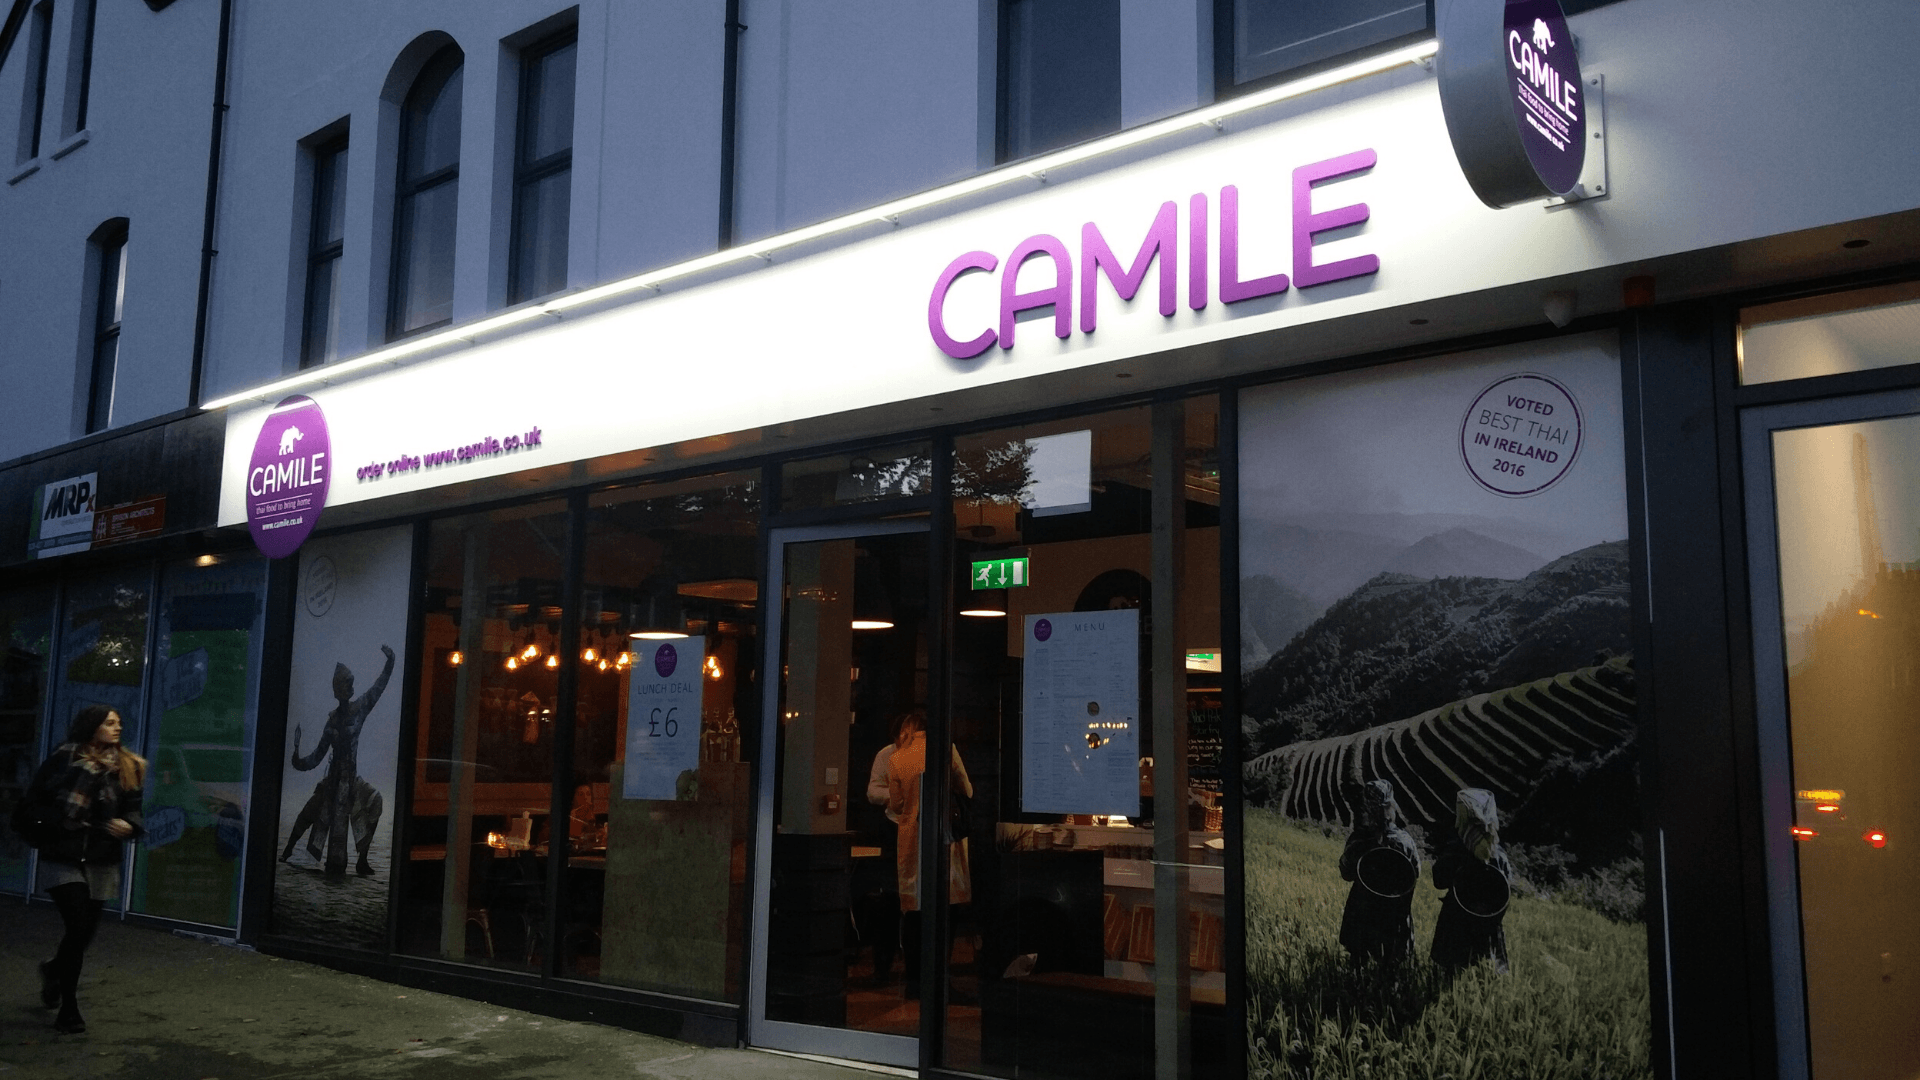 Camile Featured Image Directory March 2020 (1)